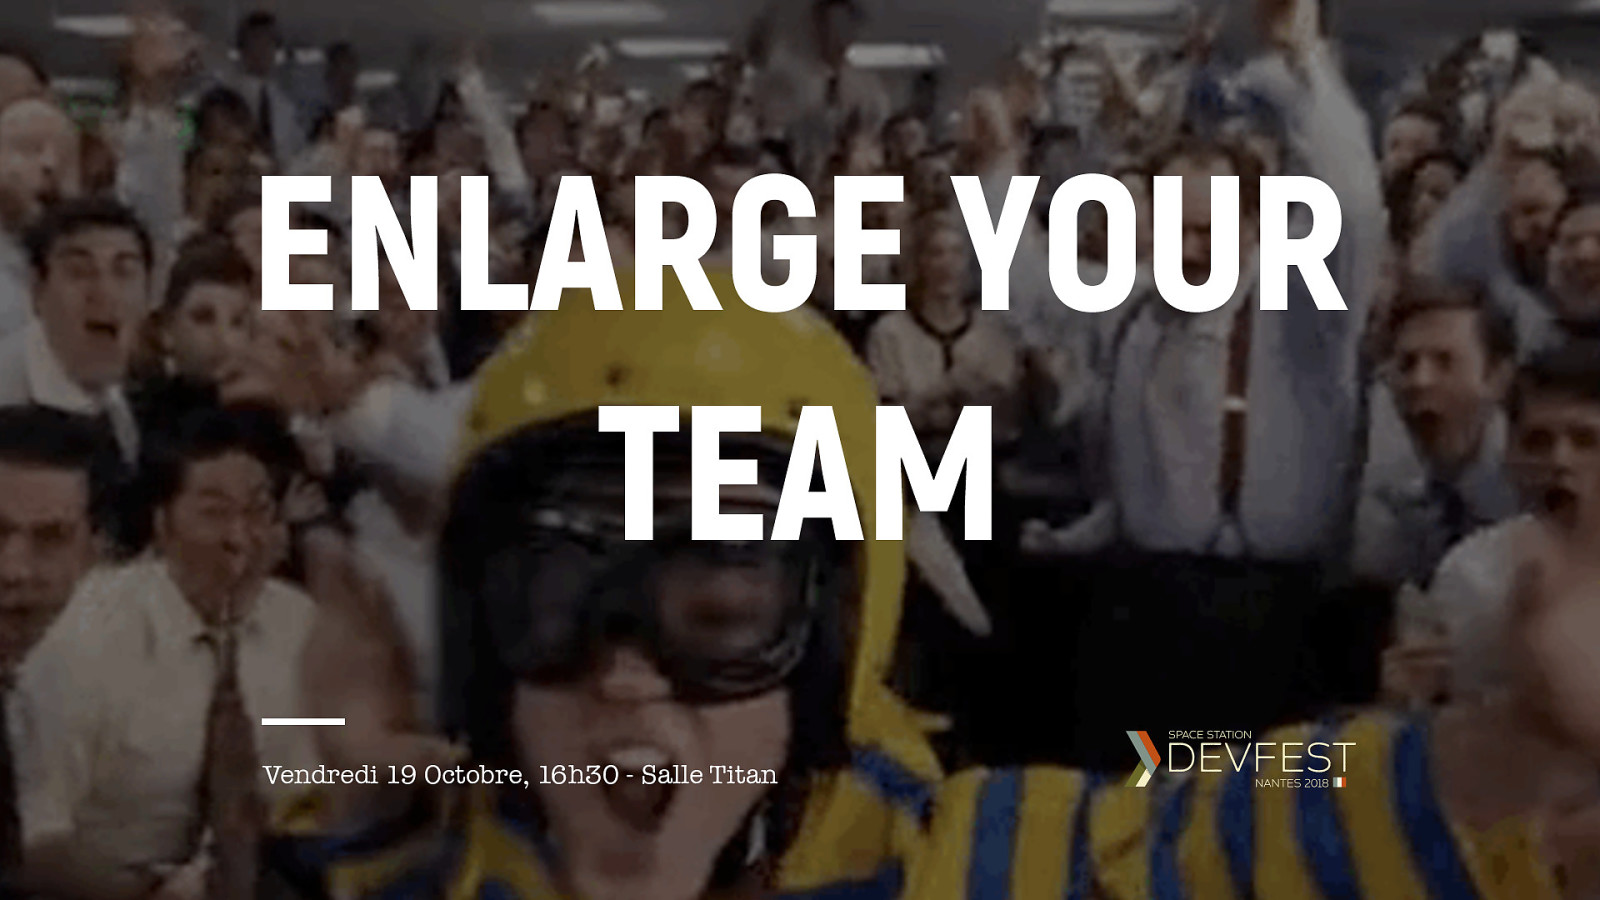 Enlarge your team